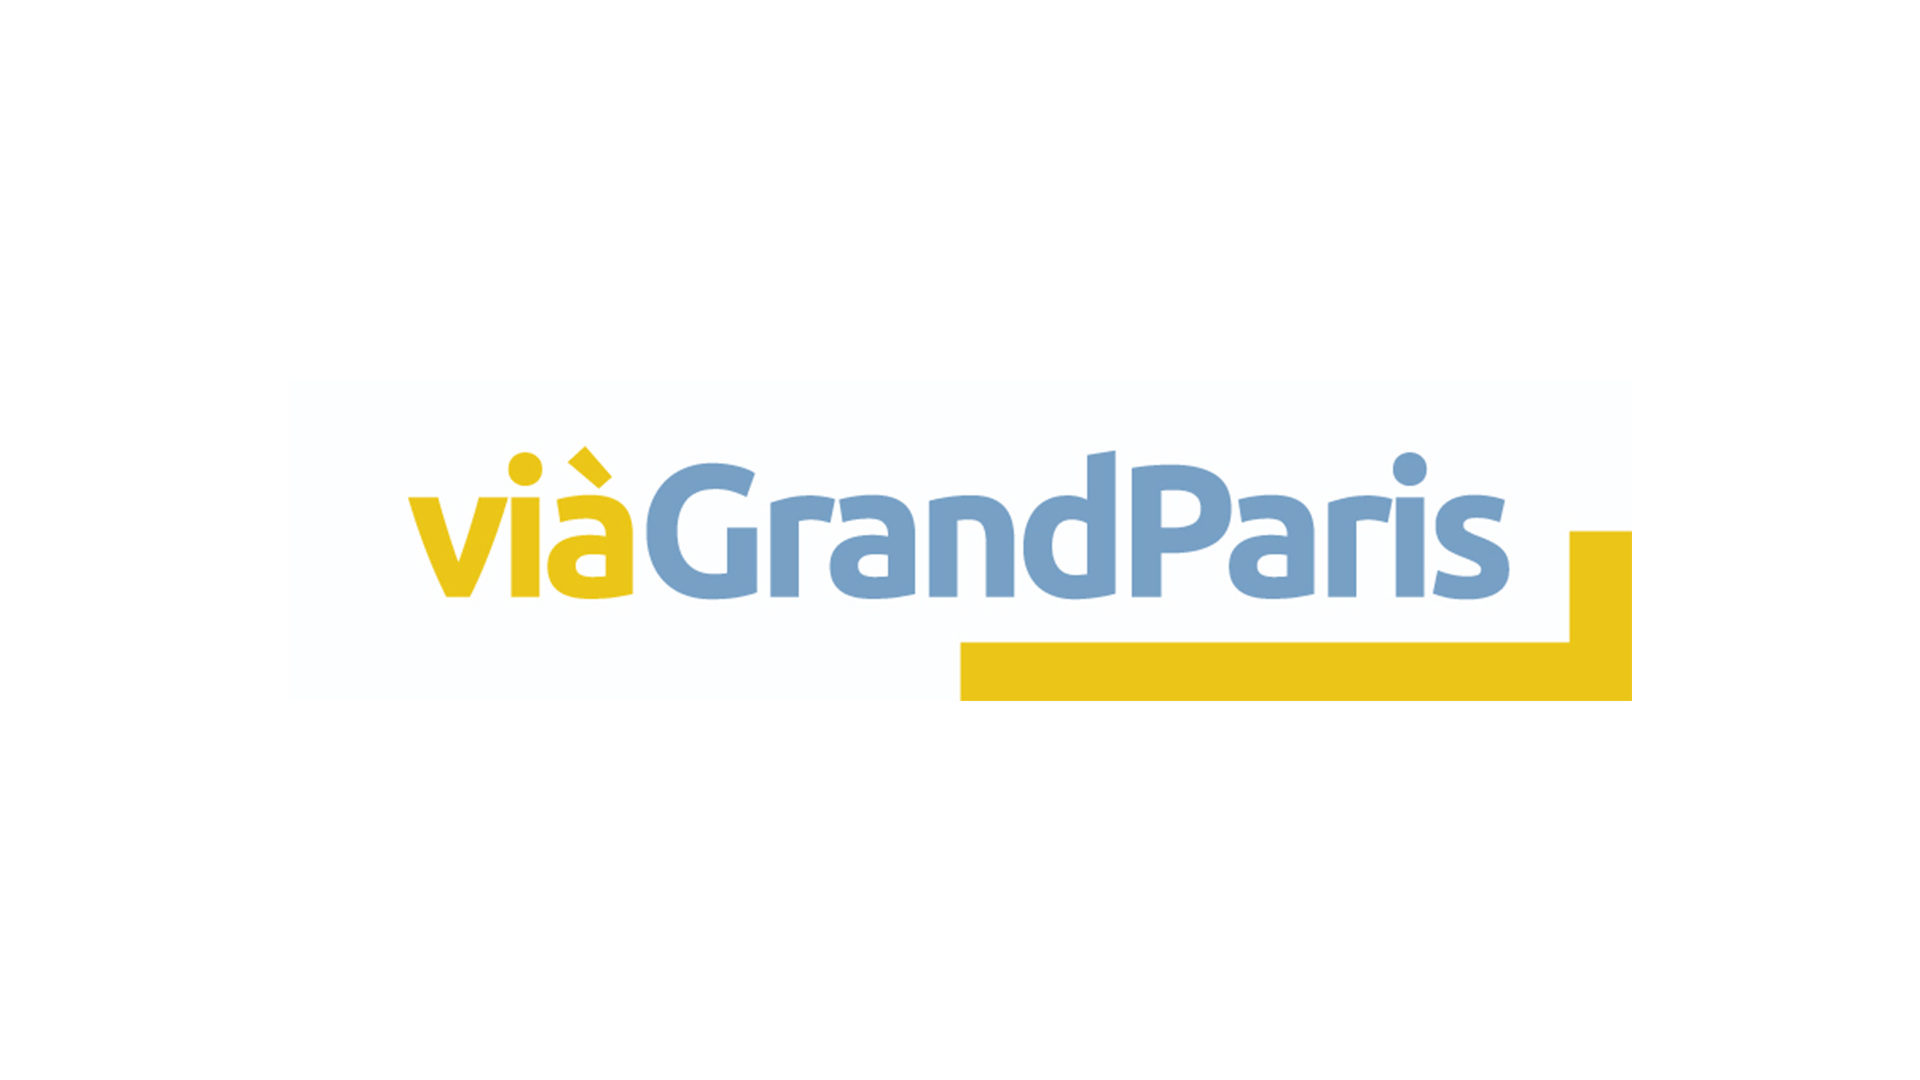 logo_viagrandparis